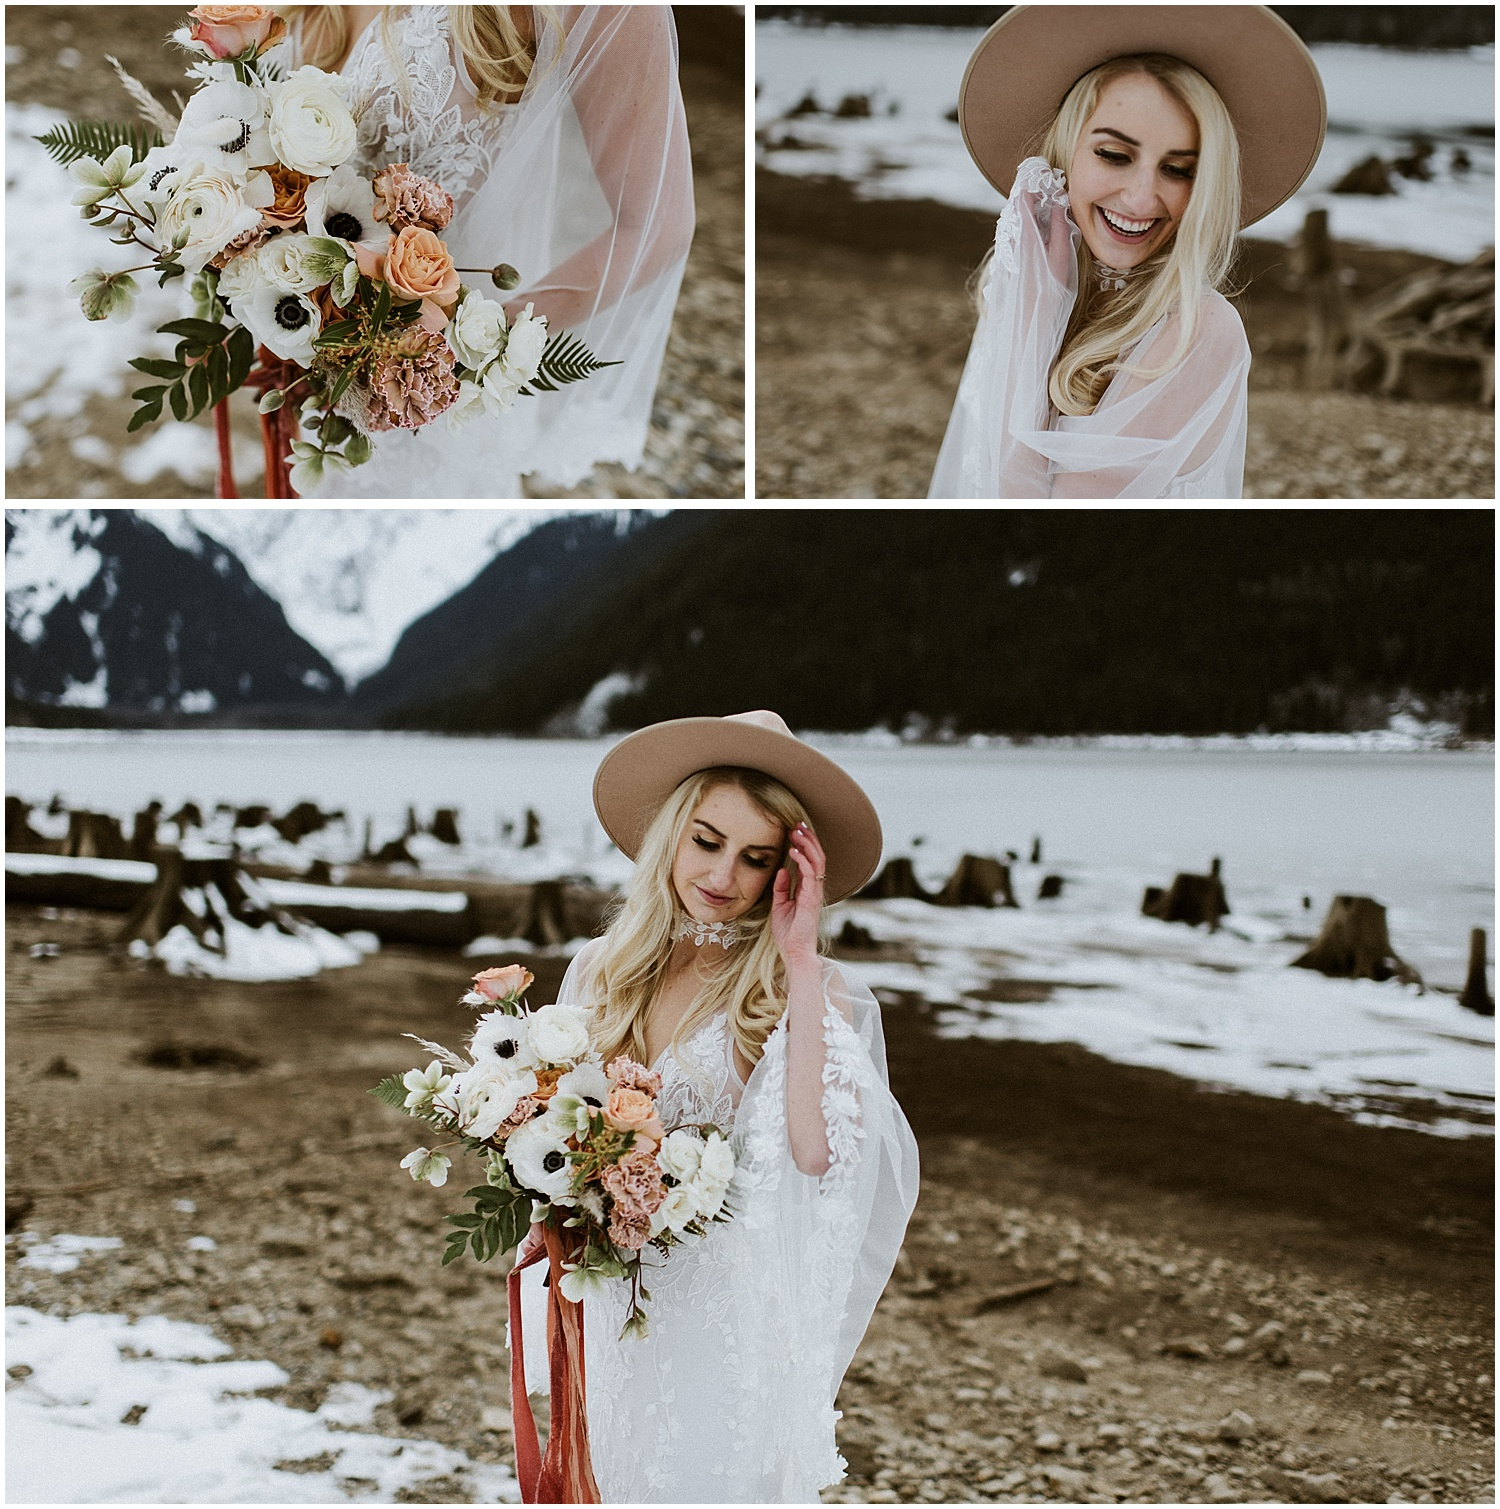 Jones_Lake_wedding_winter_elopement_vancouver_photographer_0269.jpg